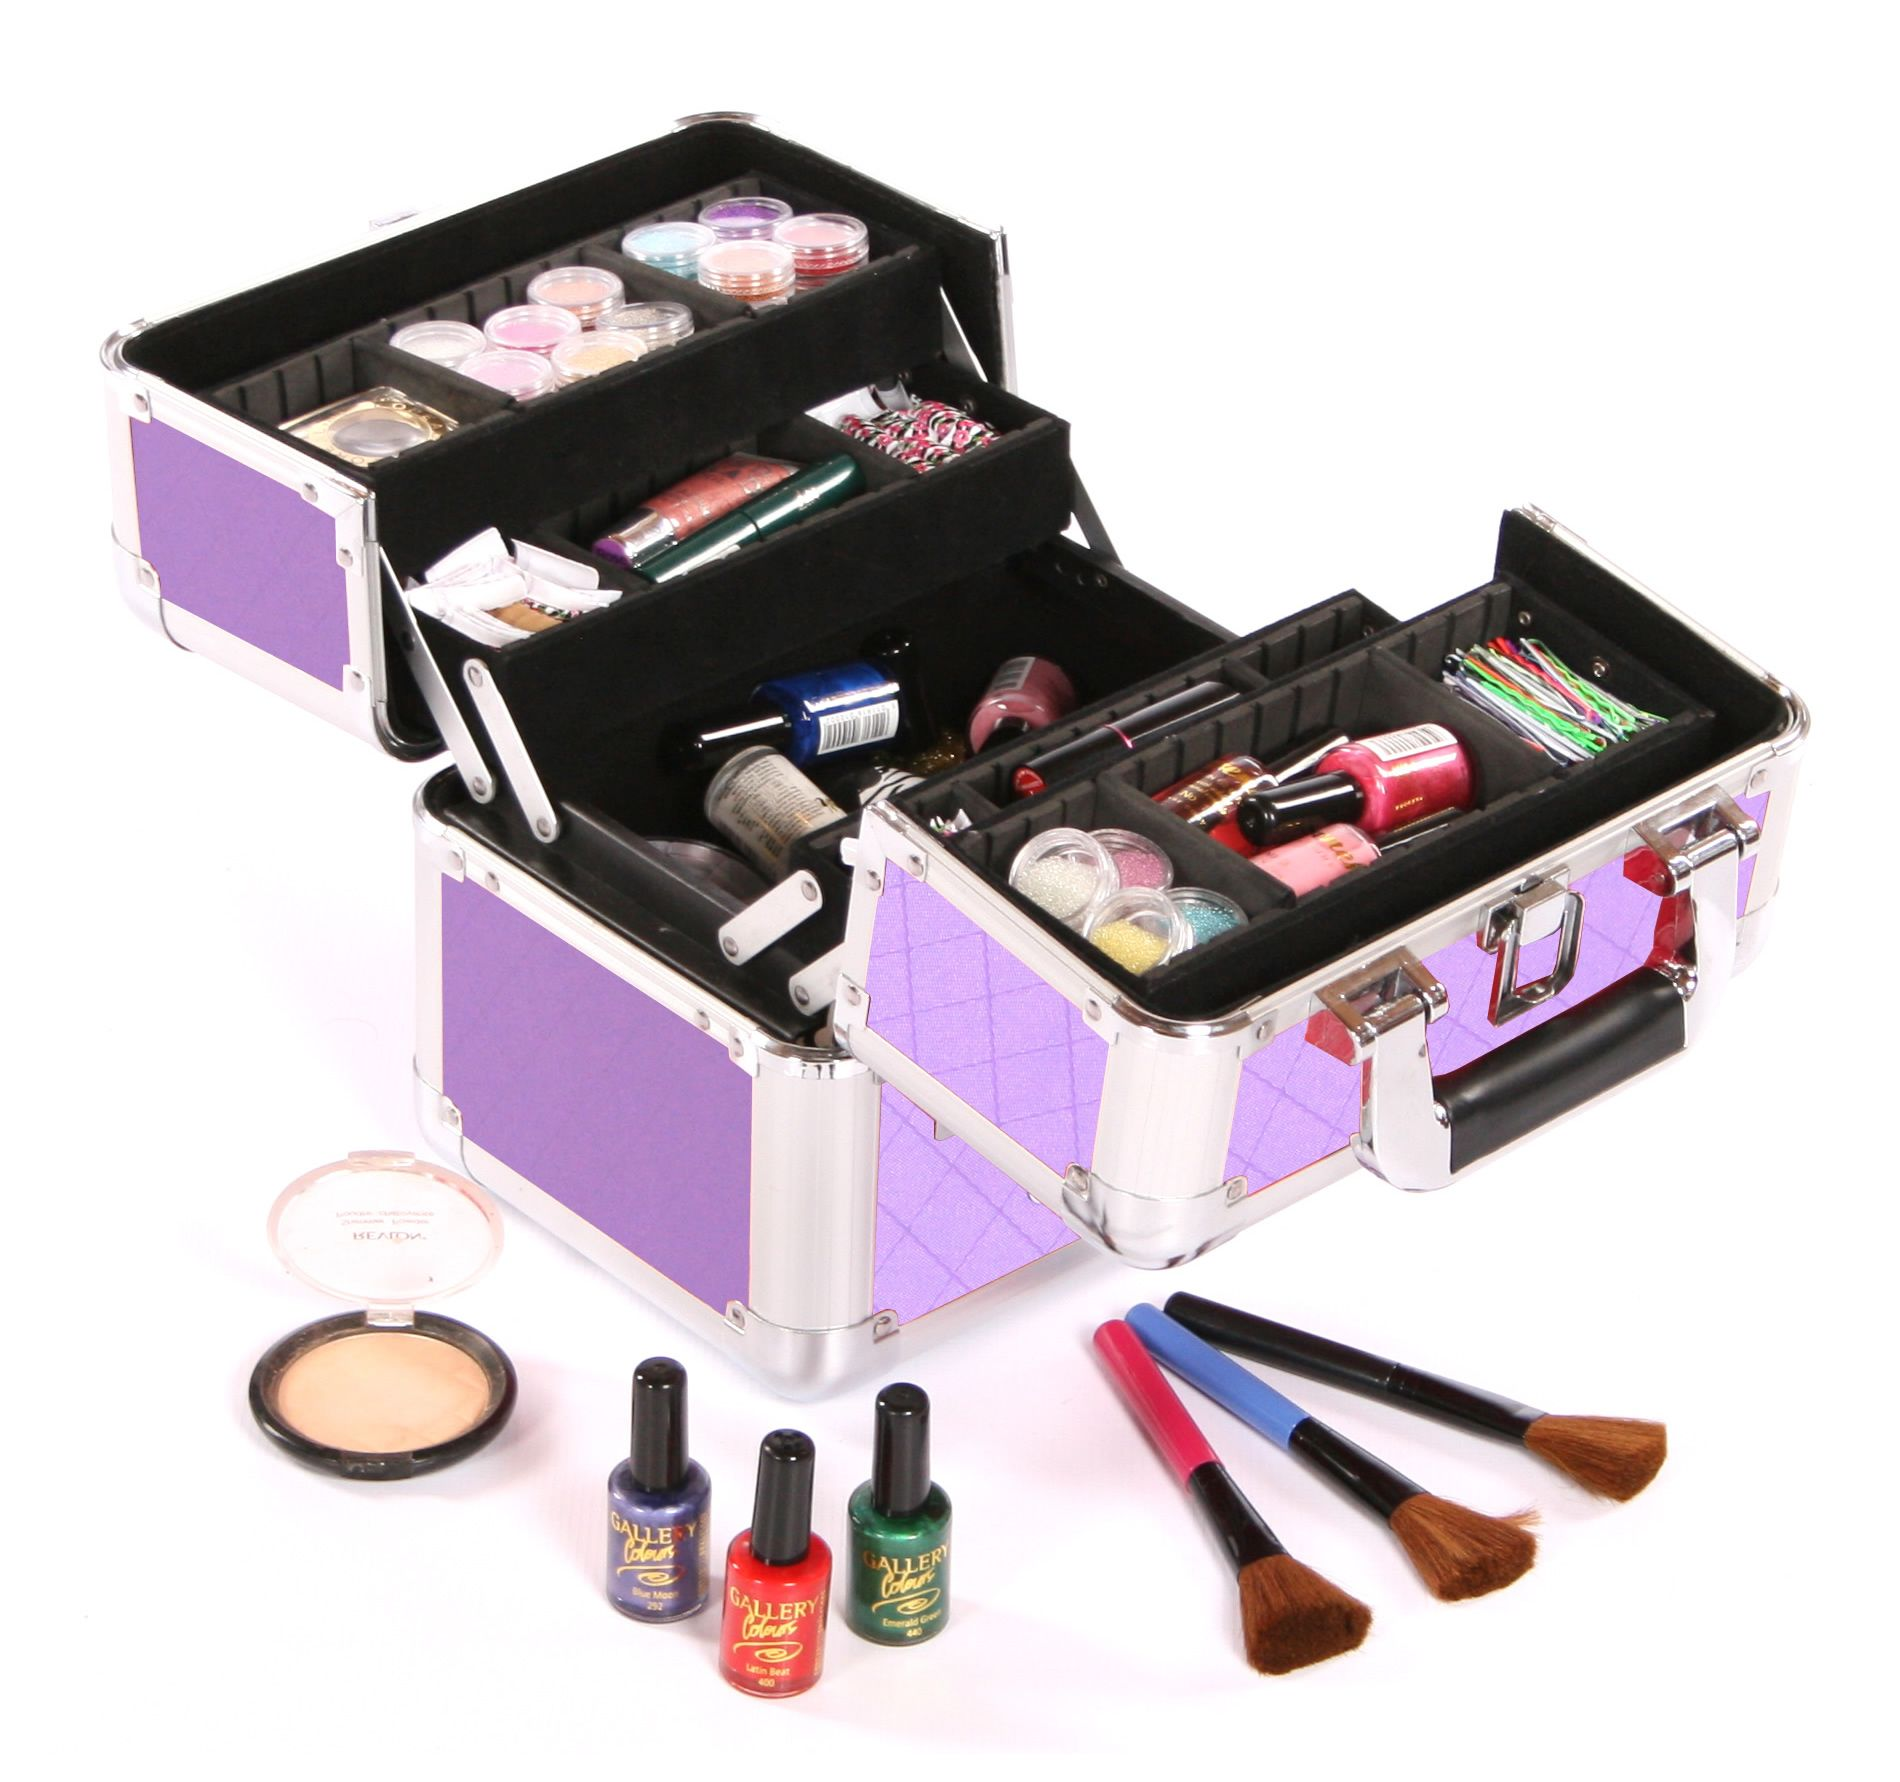 Inside the Urbanity Cosmo Makeup Case | Makeup case ...